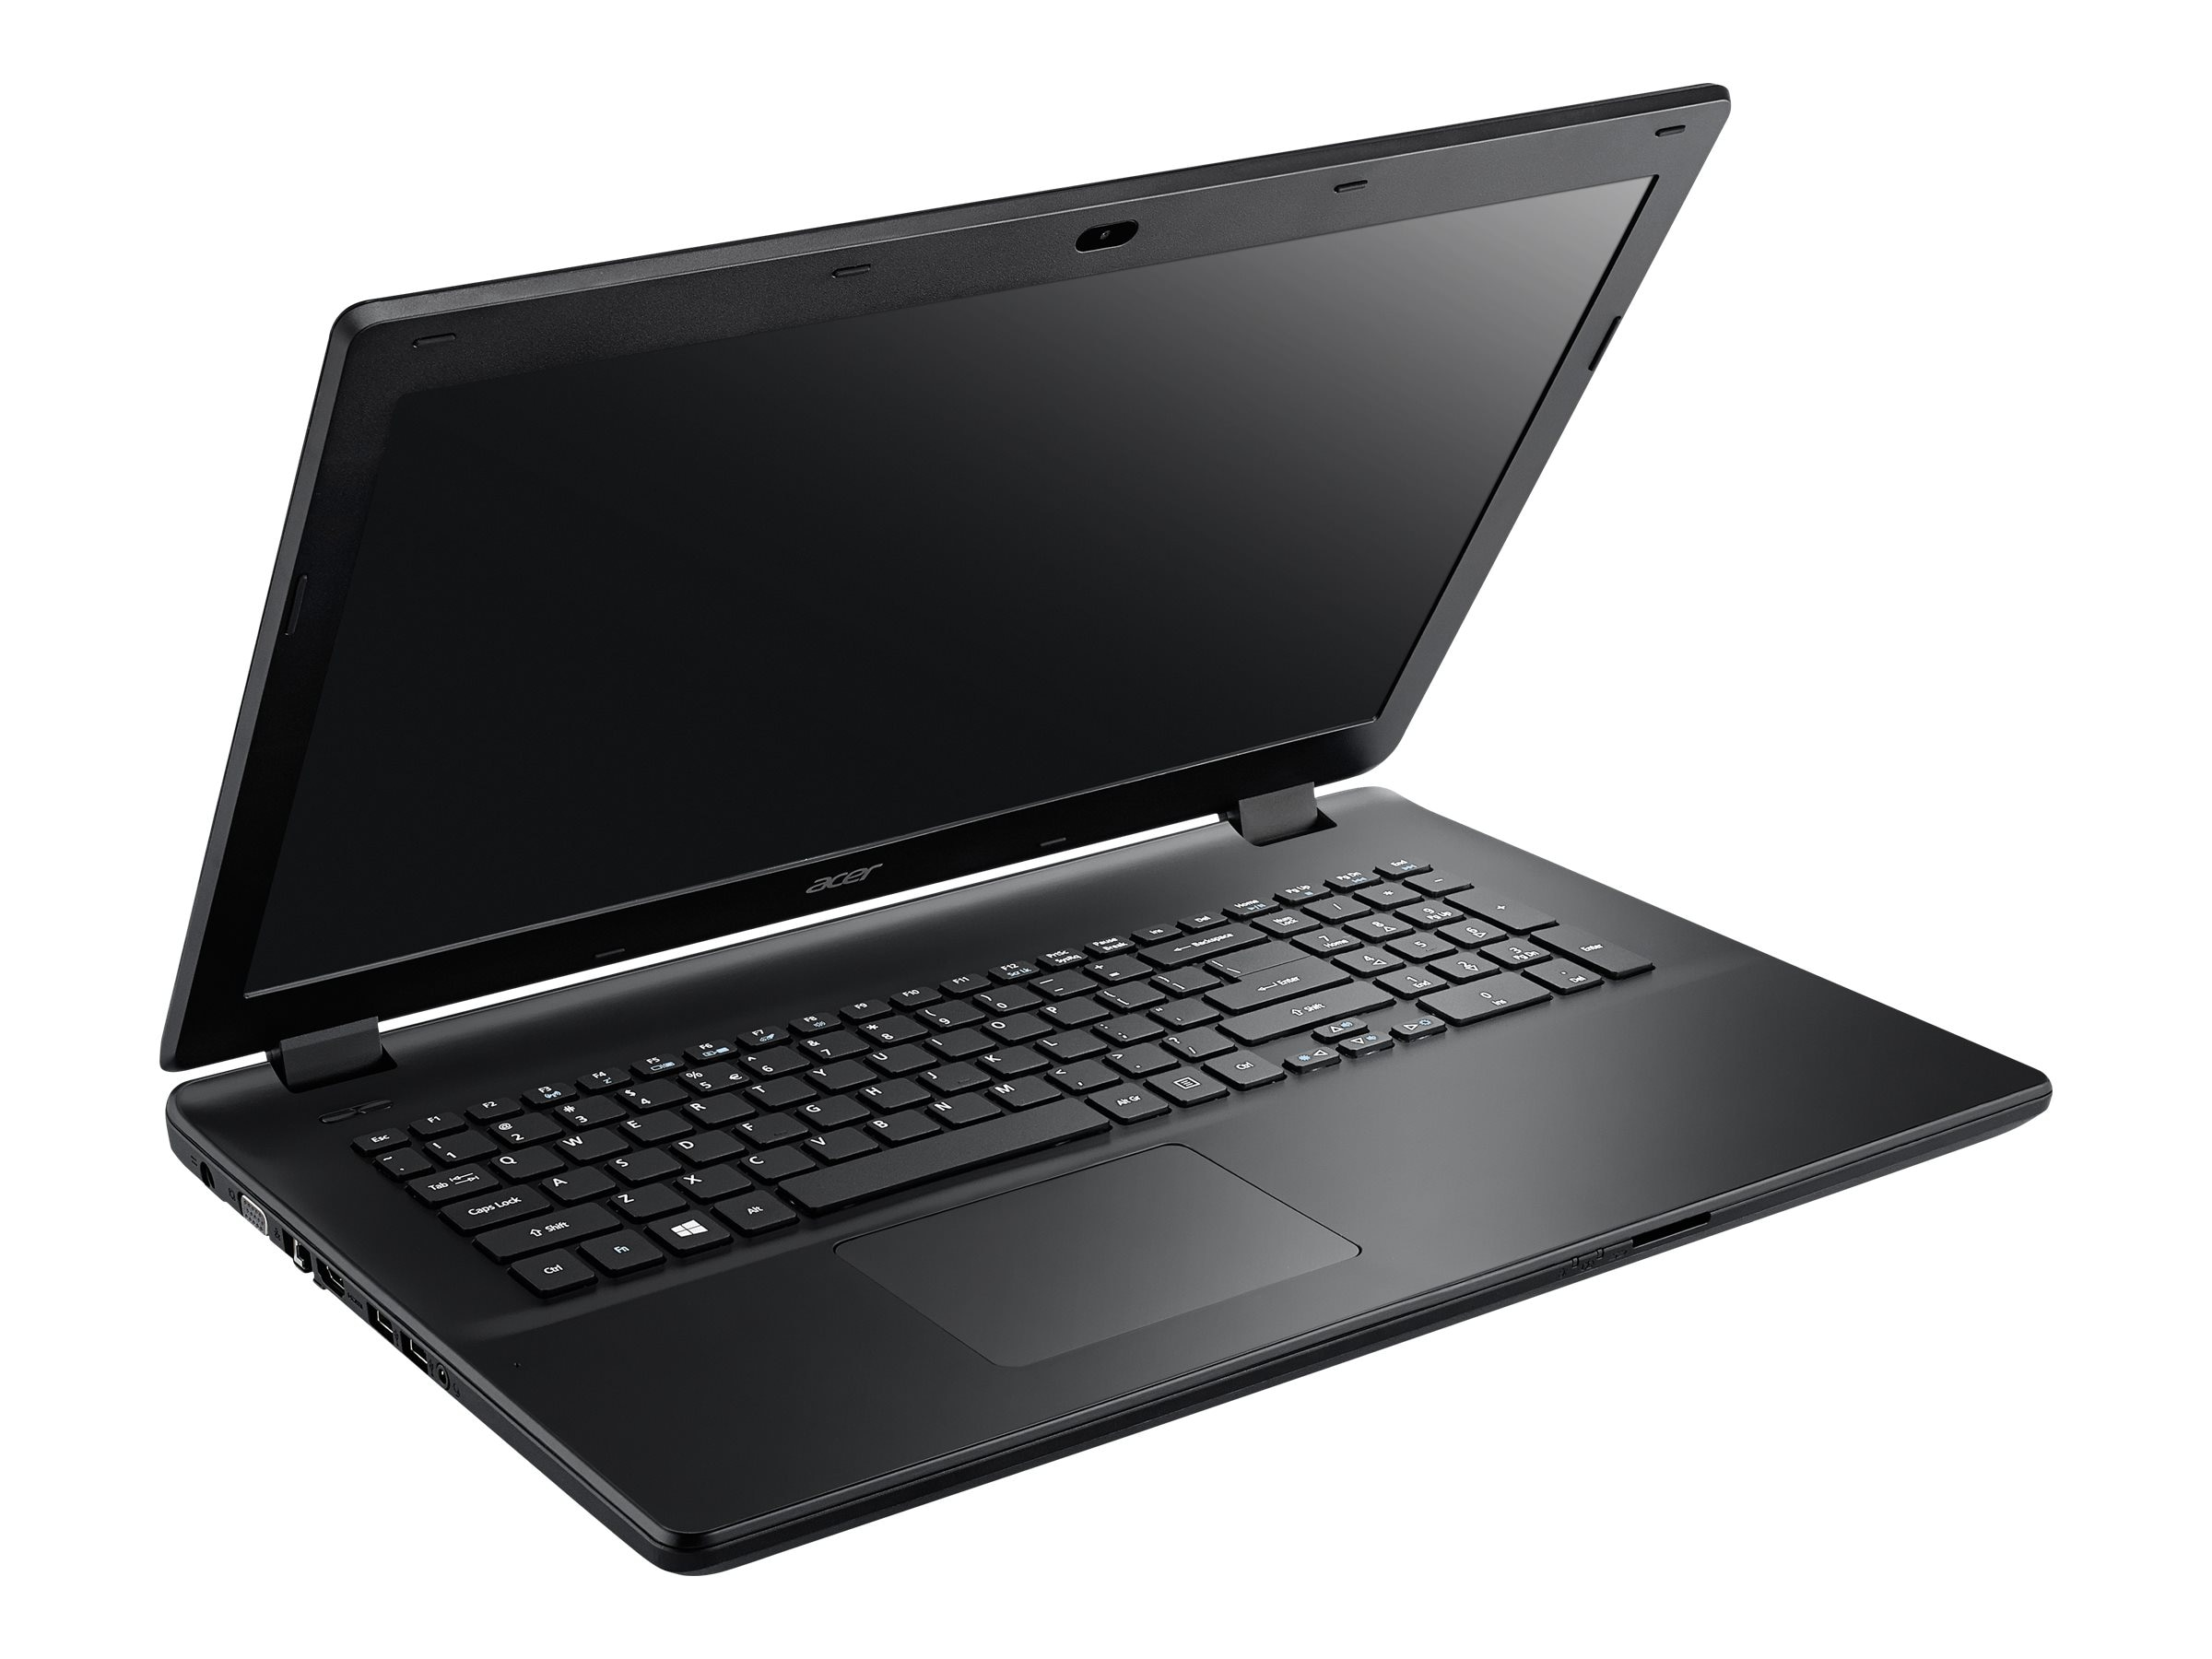 Acer TravelMate P246-M-52X2 1.7GHz Core i5 14in display, NX.V9VAA.003